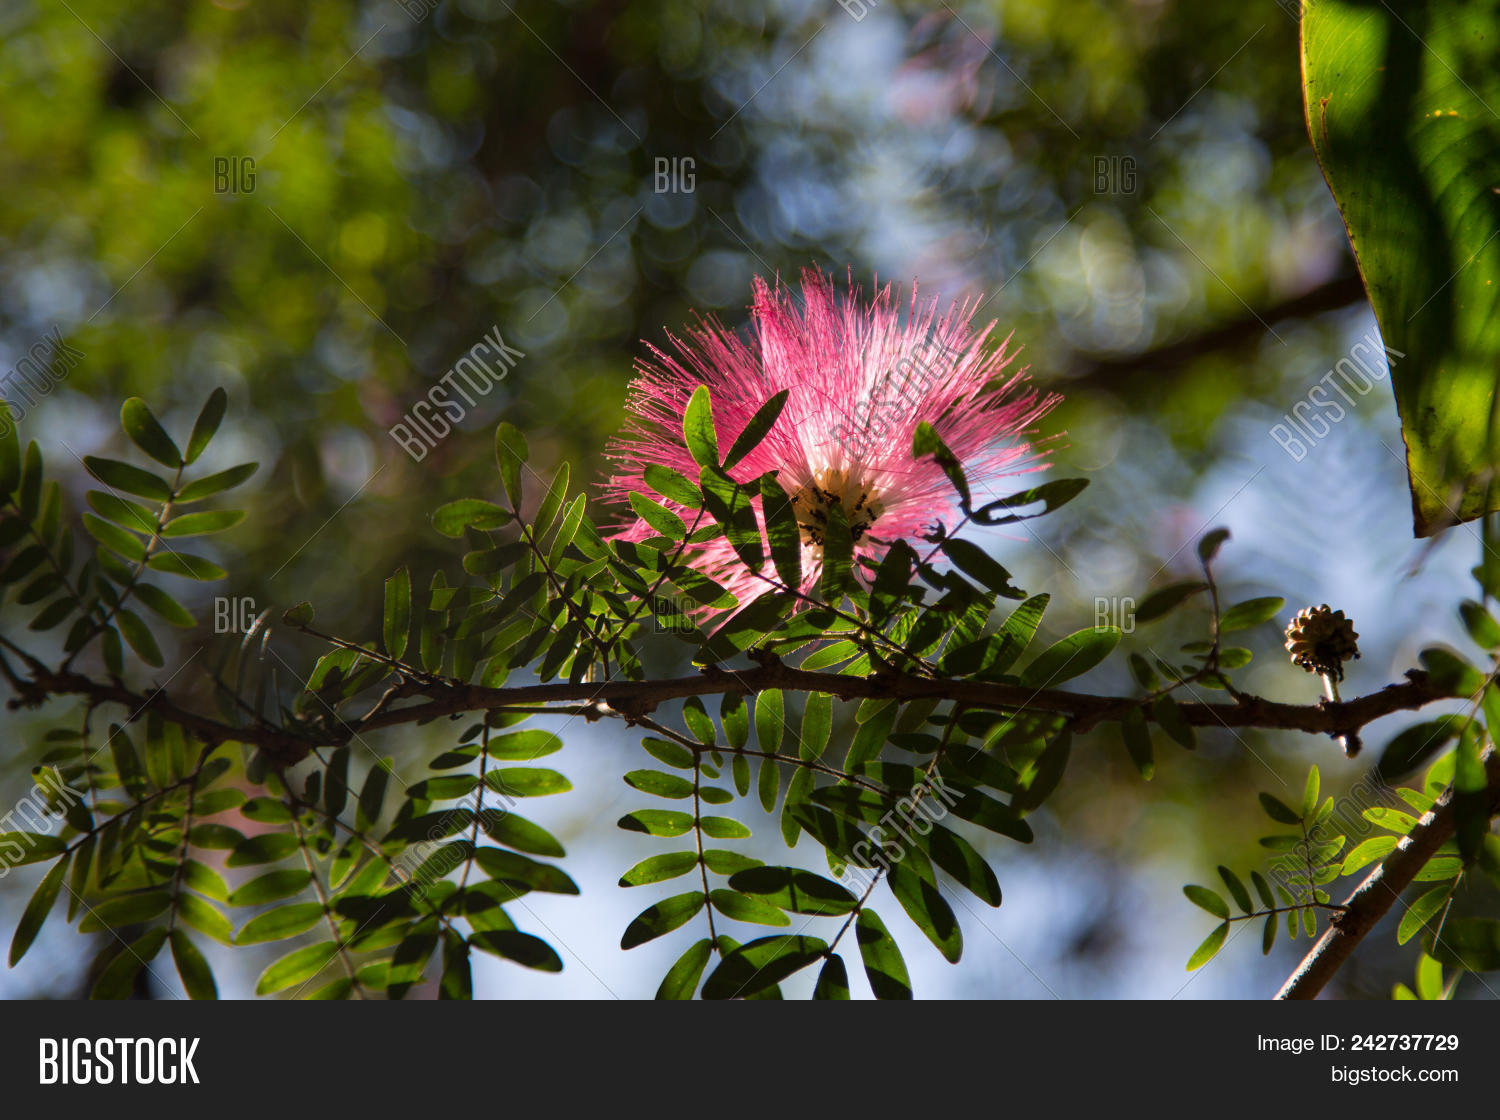 Image Cute Fluffy Pink Image Photo Free Trial Bigstock